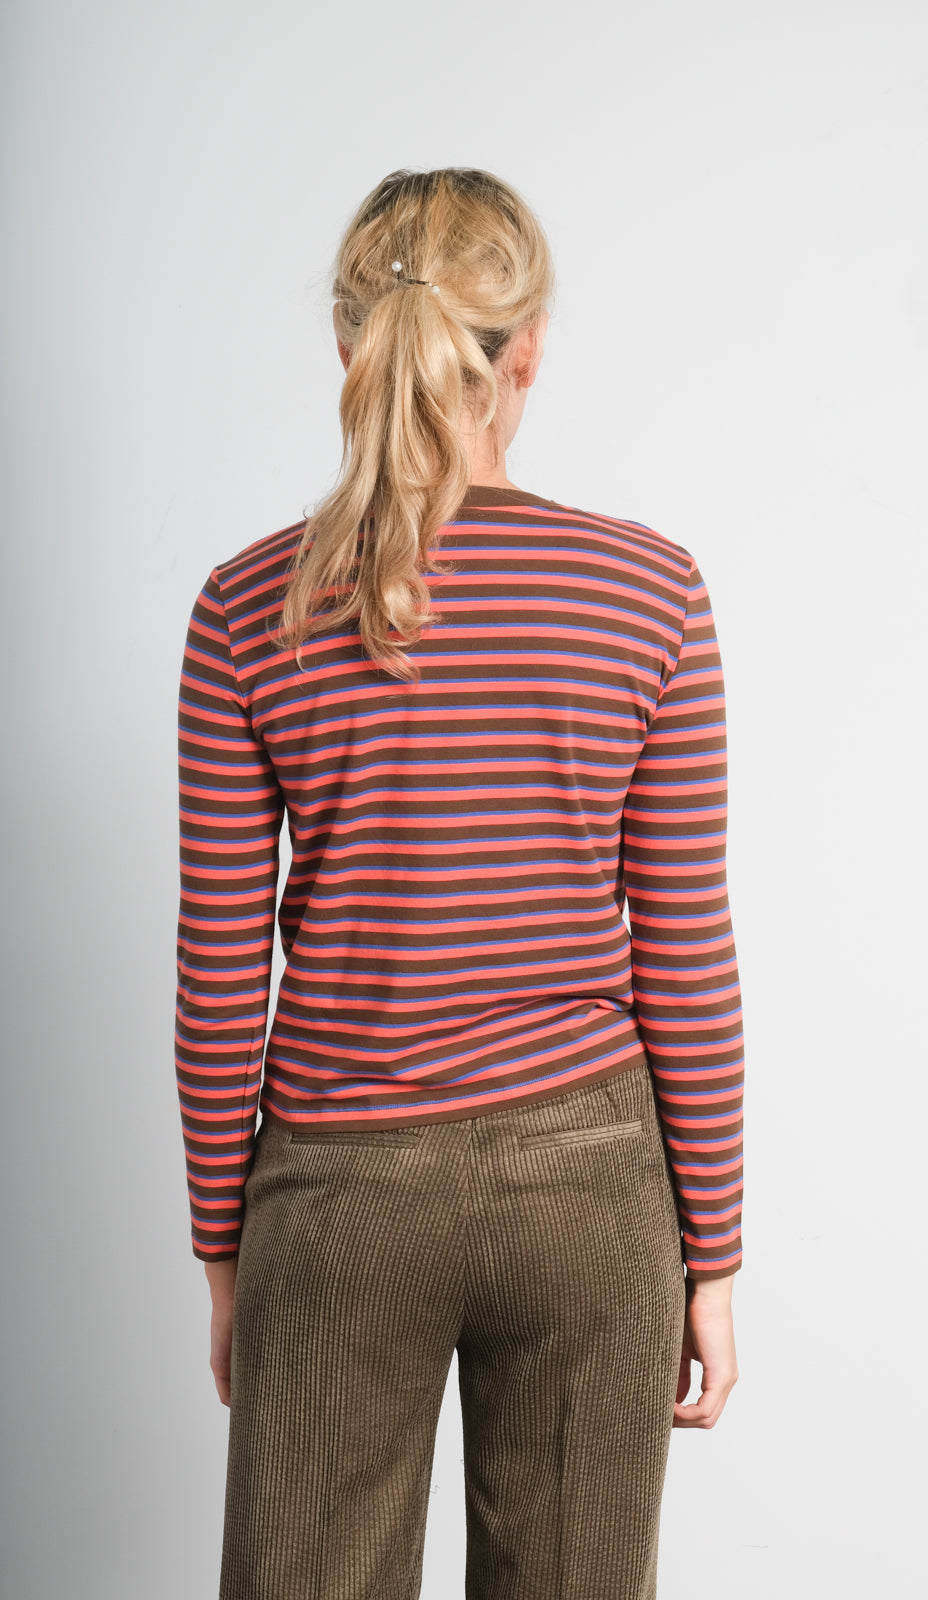 LOR Luxe stripe top in toffee